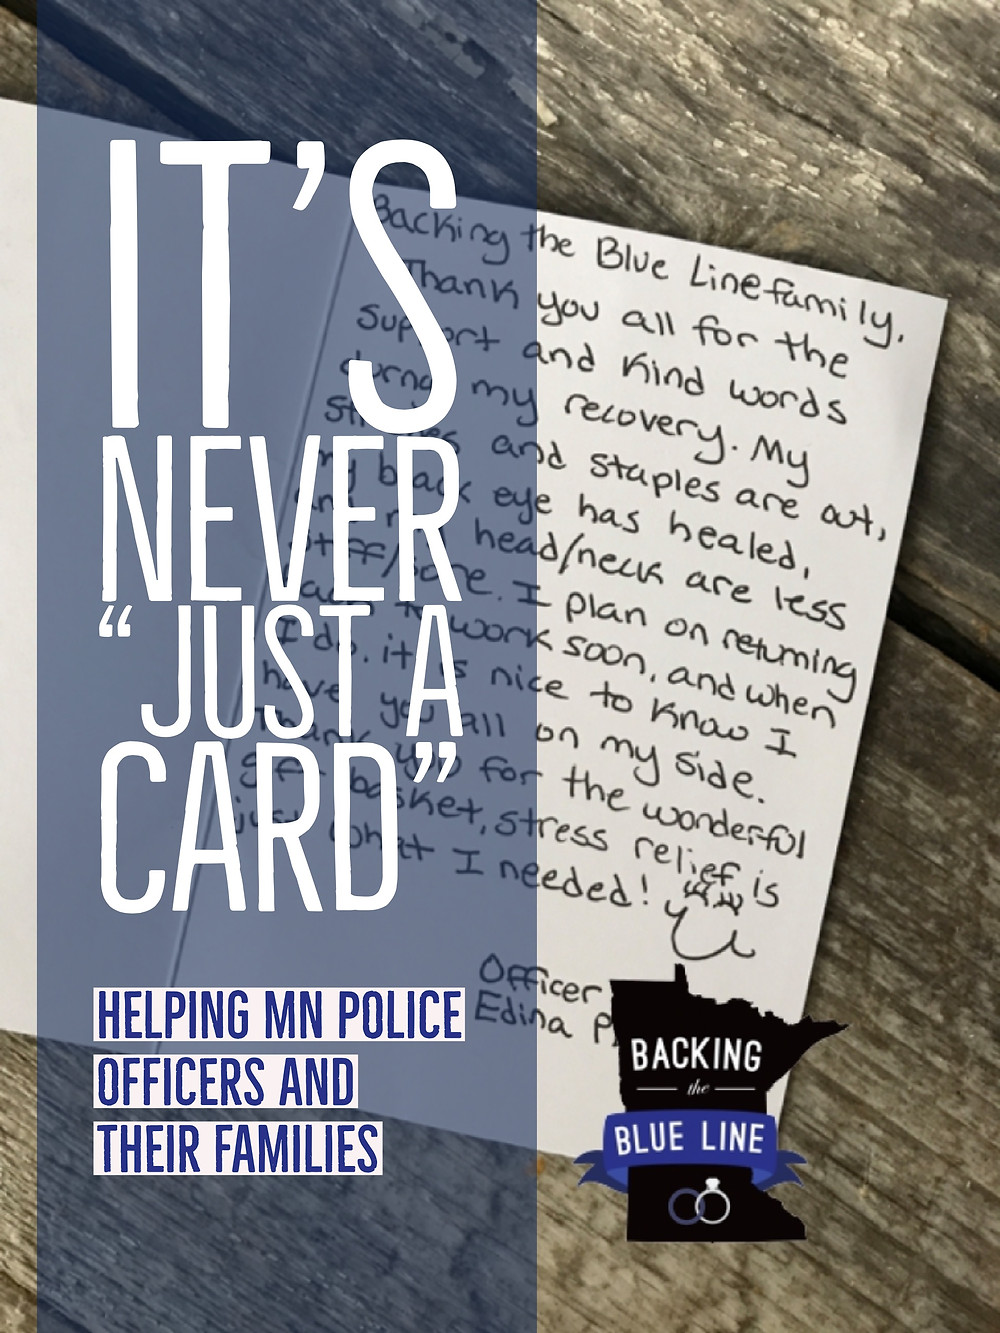 "Photo of handwritten thank you card to Backing the Blue Line from an officer who received BTBL support. Includes graphic with text ""It's Never Just a Card: Helping MN Police Officers and Their Families."